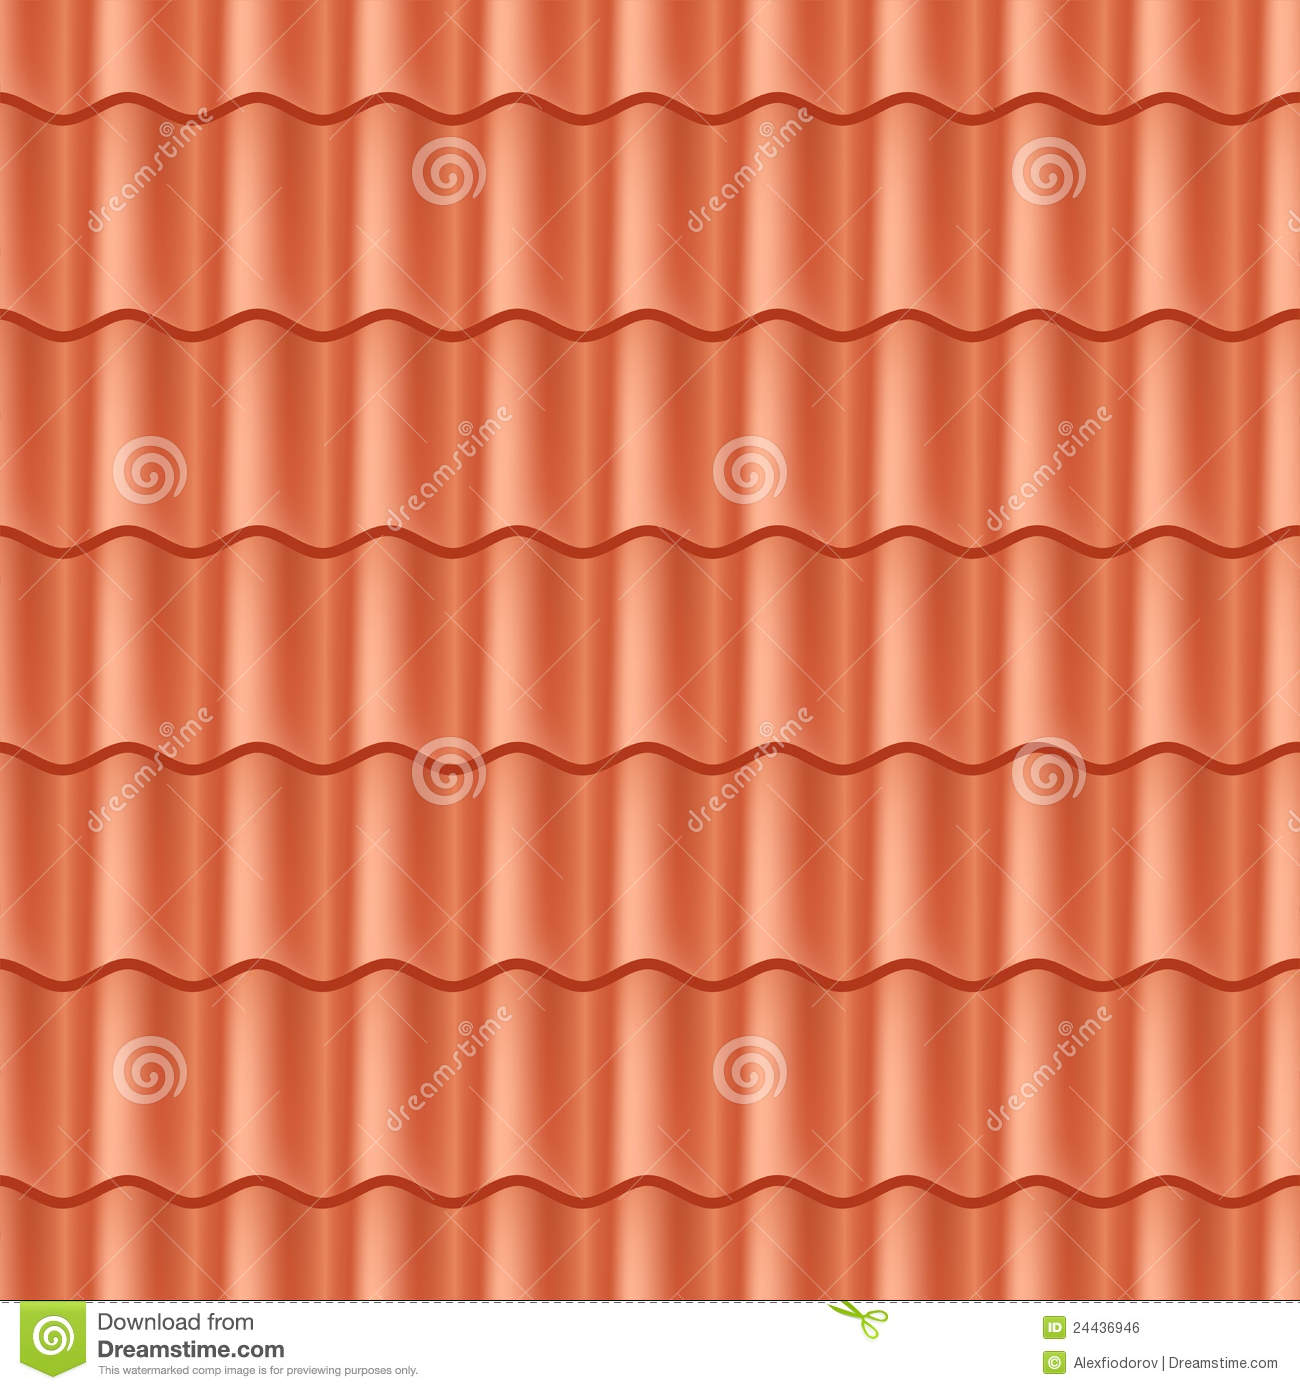 Seamless Terracota Roof Tile Royalty Free Stock Image